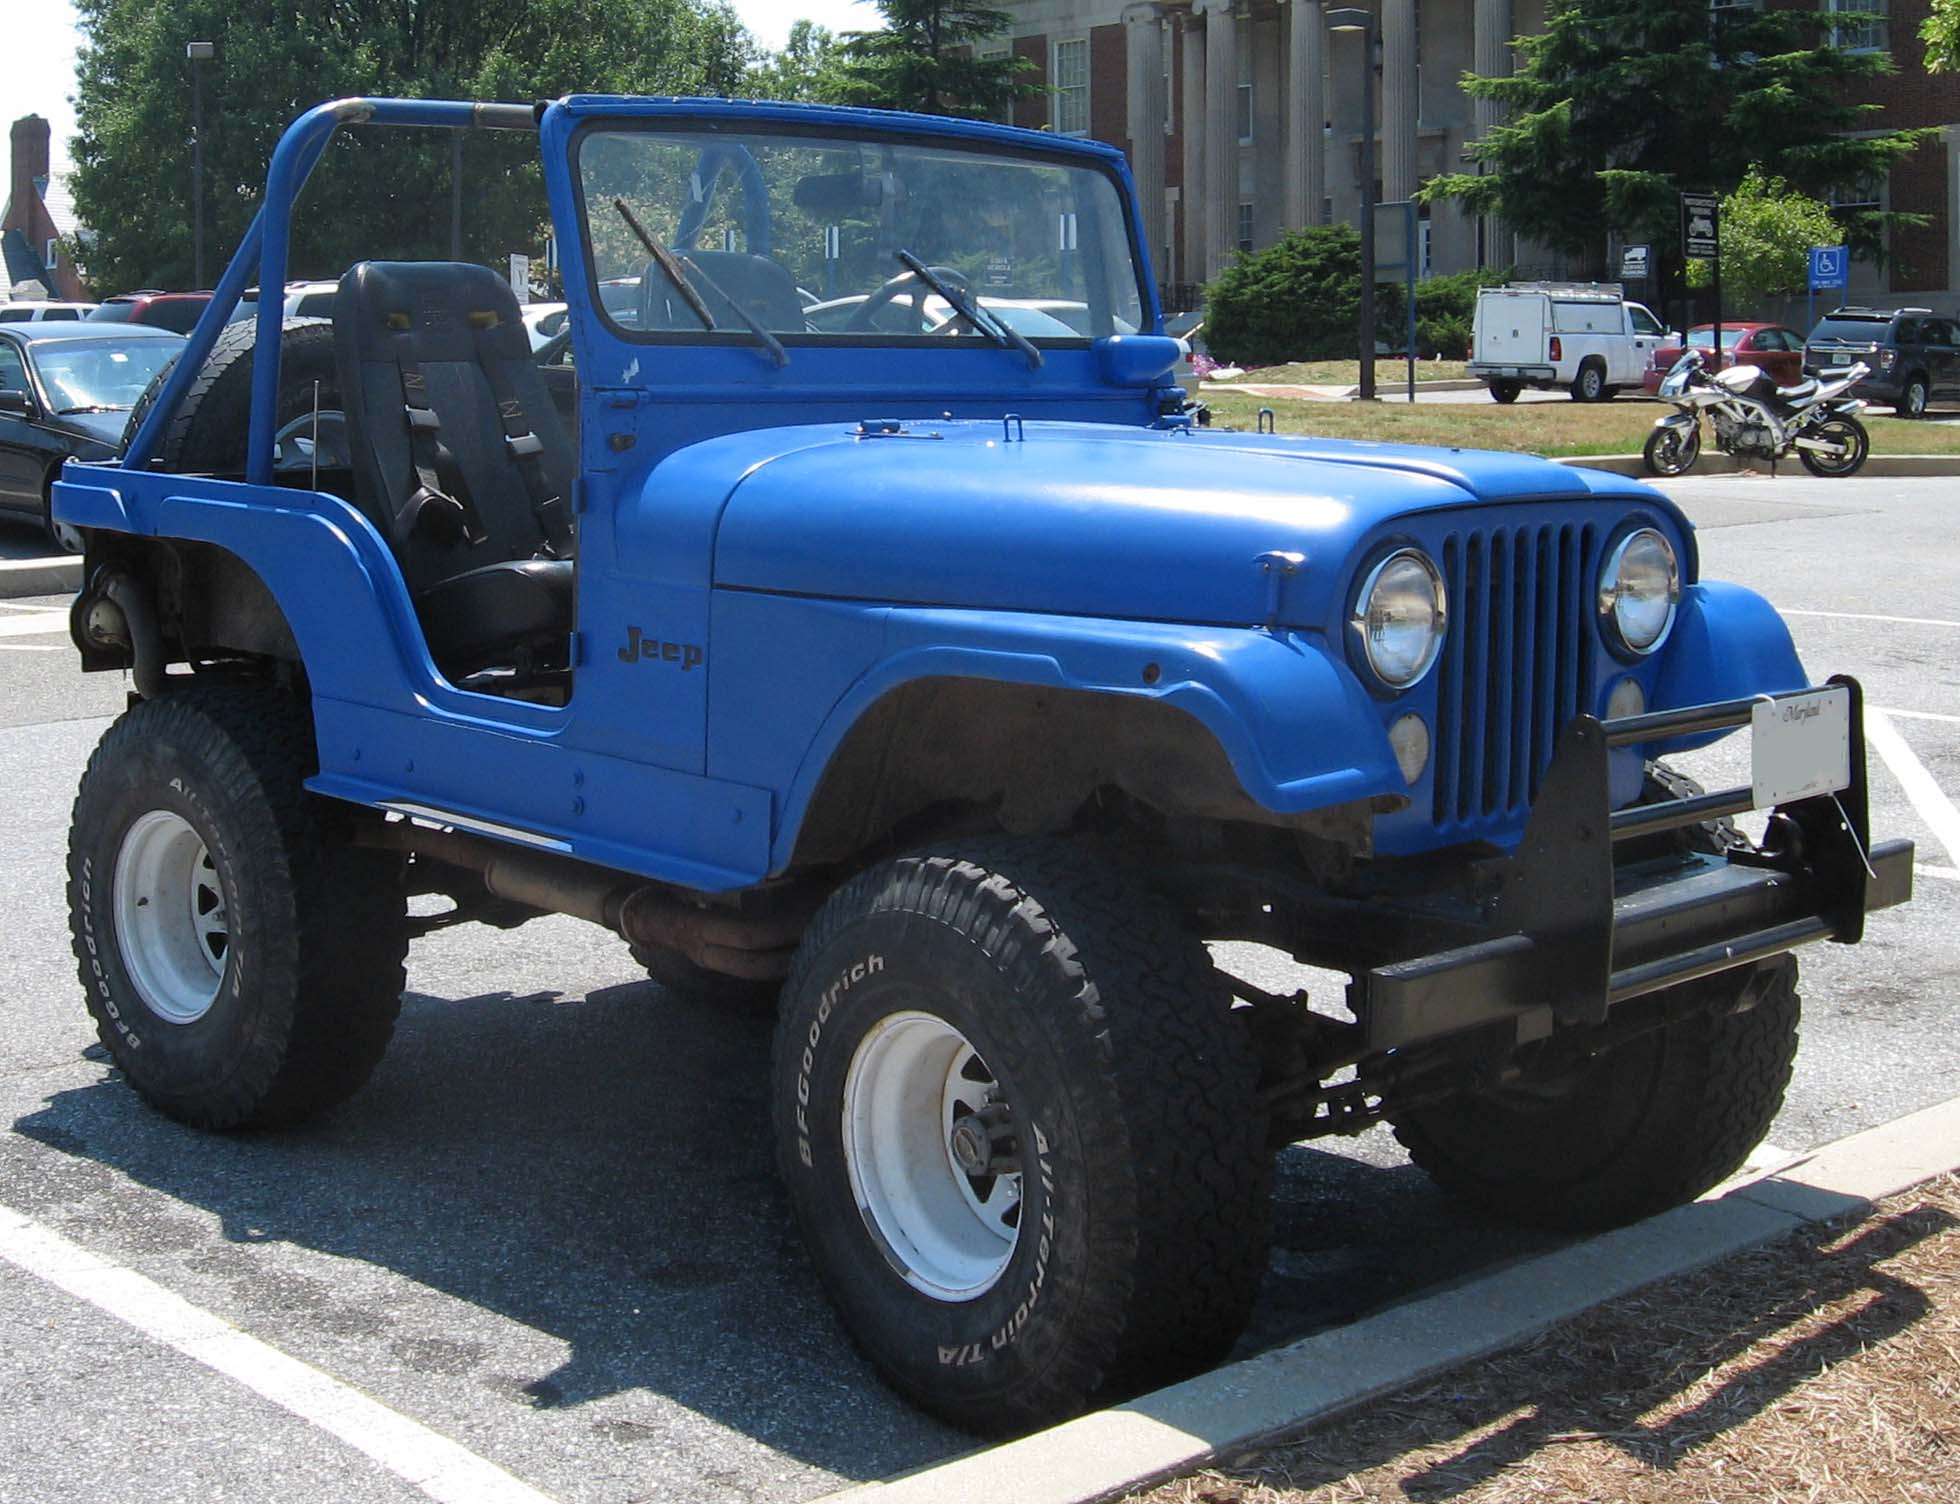 Another Jeep CJ5 | Jeep Enthusiast